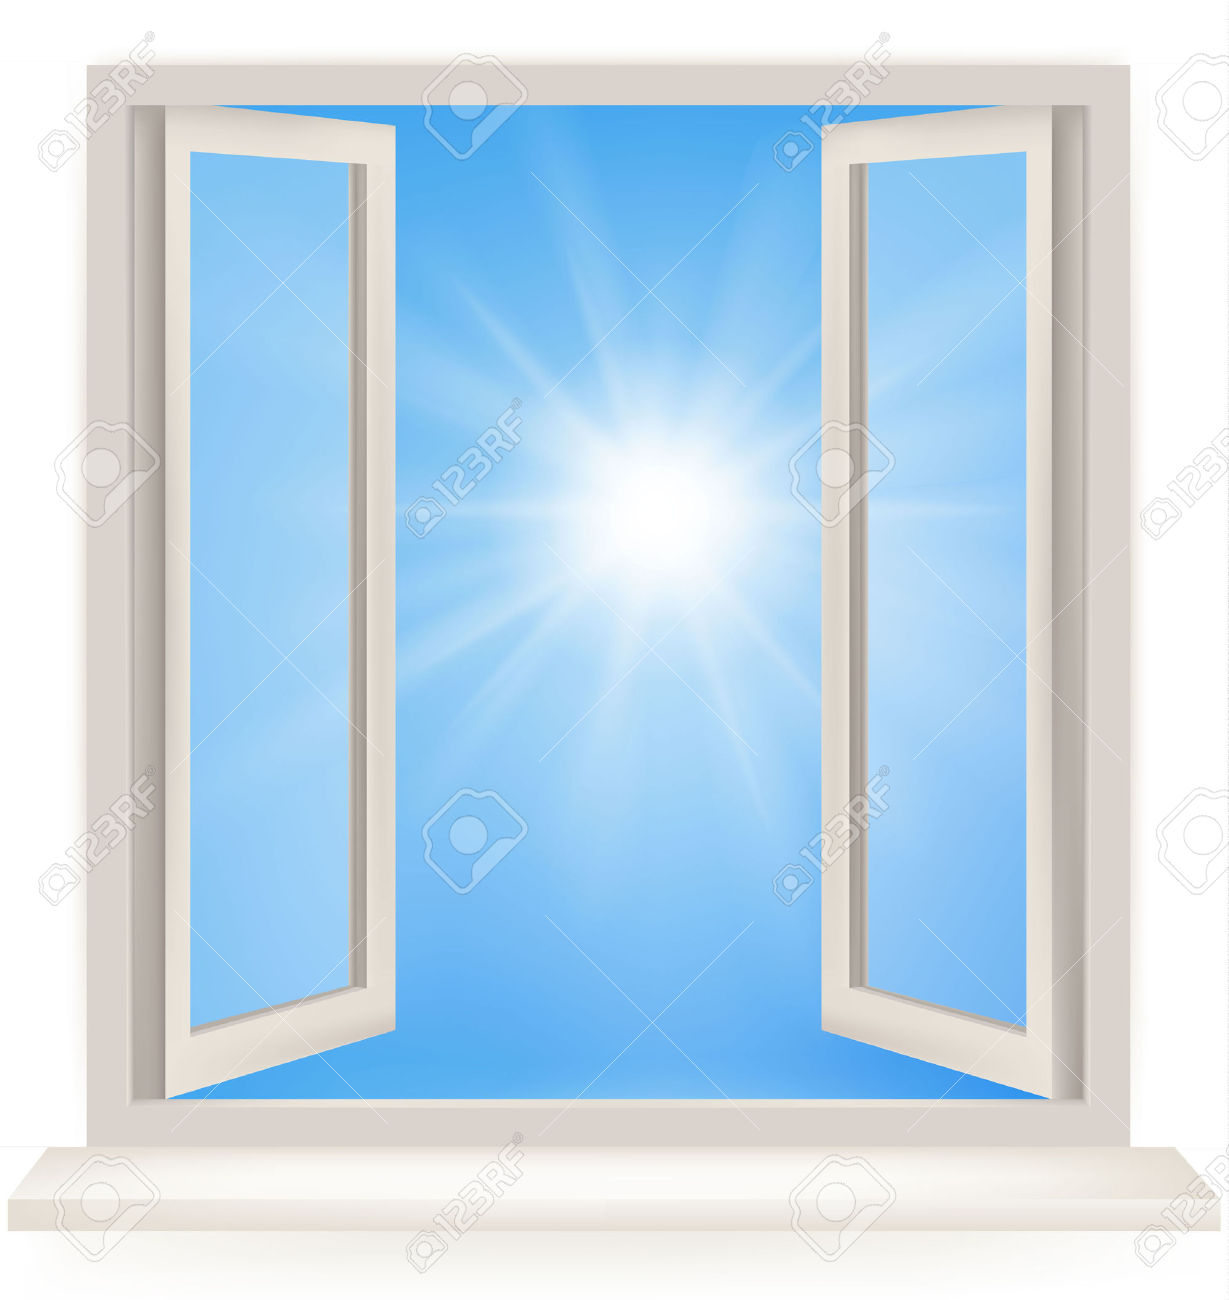 Open Window Against A White Wall And The Cloudy Sky And Sun.